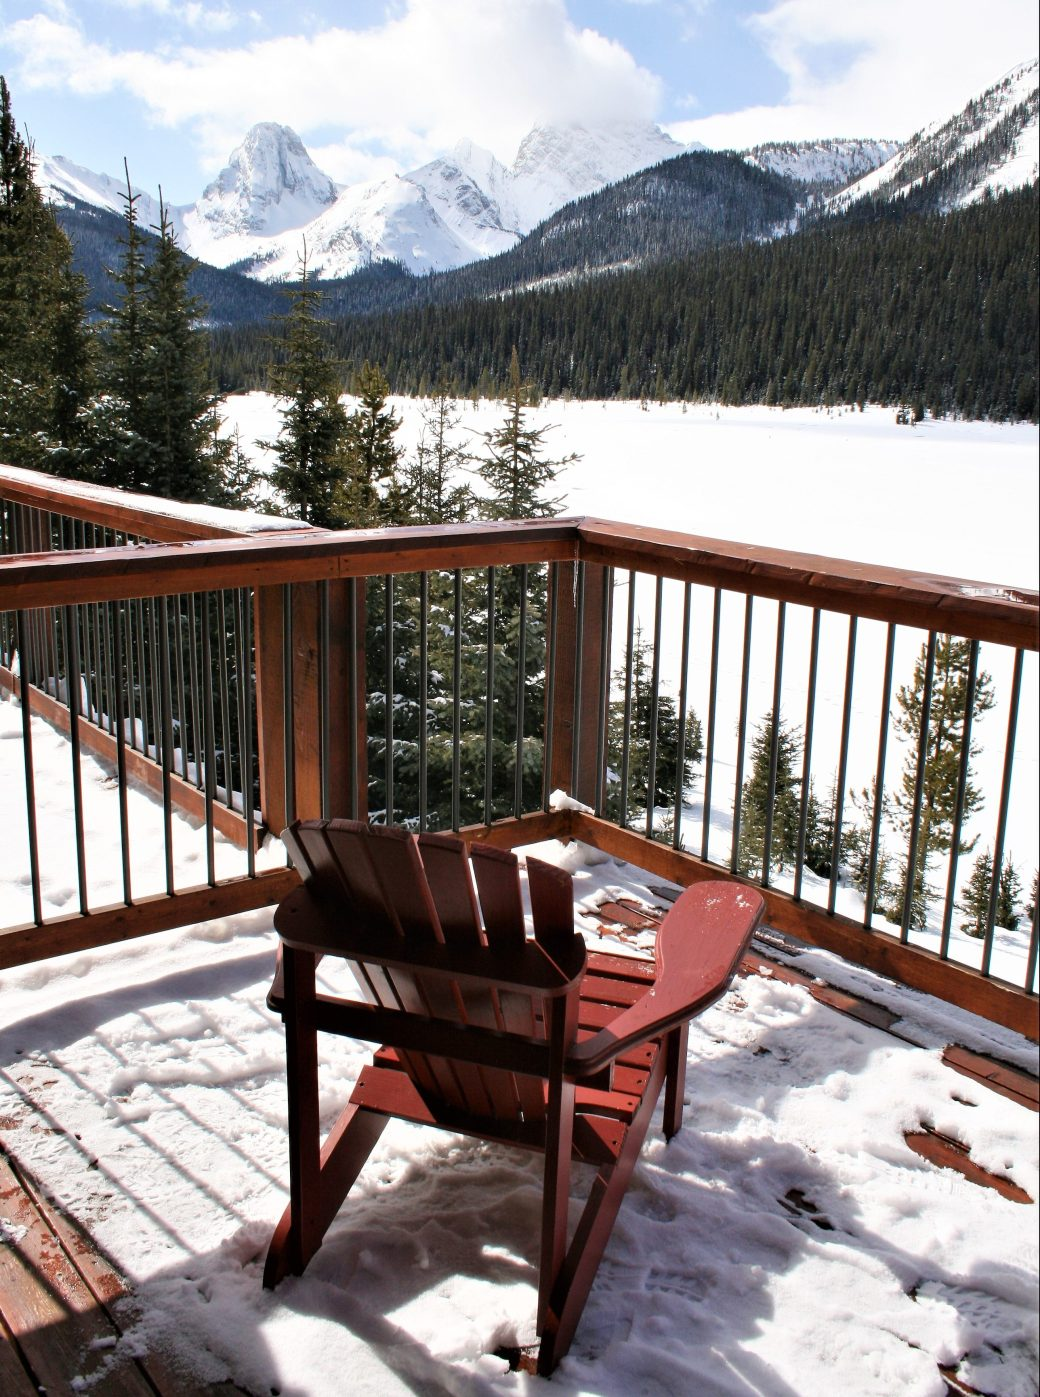 View from the Whiskey Jack Cabin, Mount Engadine Lodge, Kananaskis, Alberta, Canada